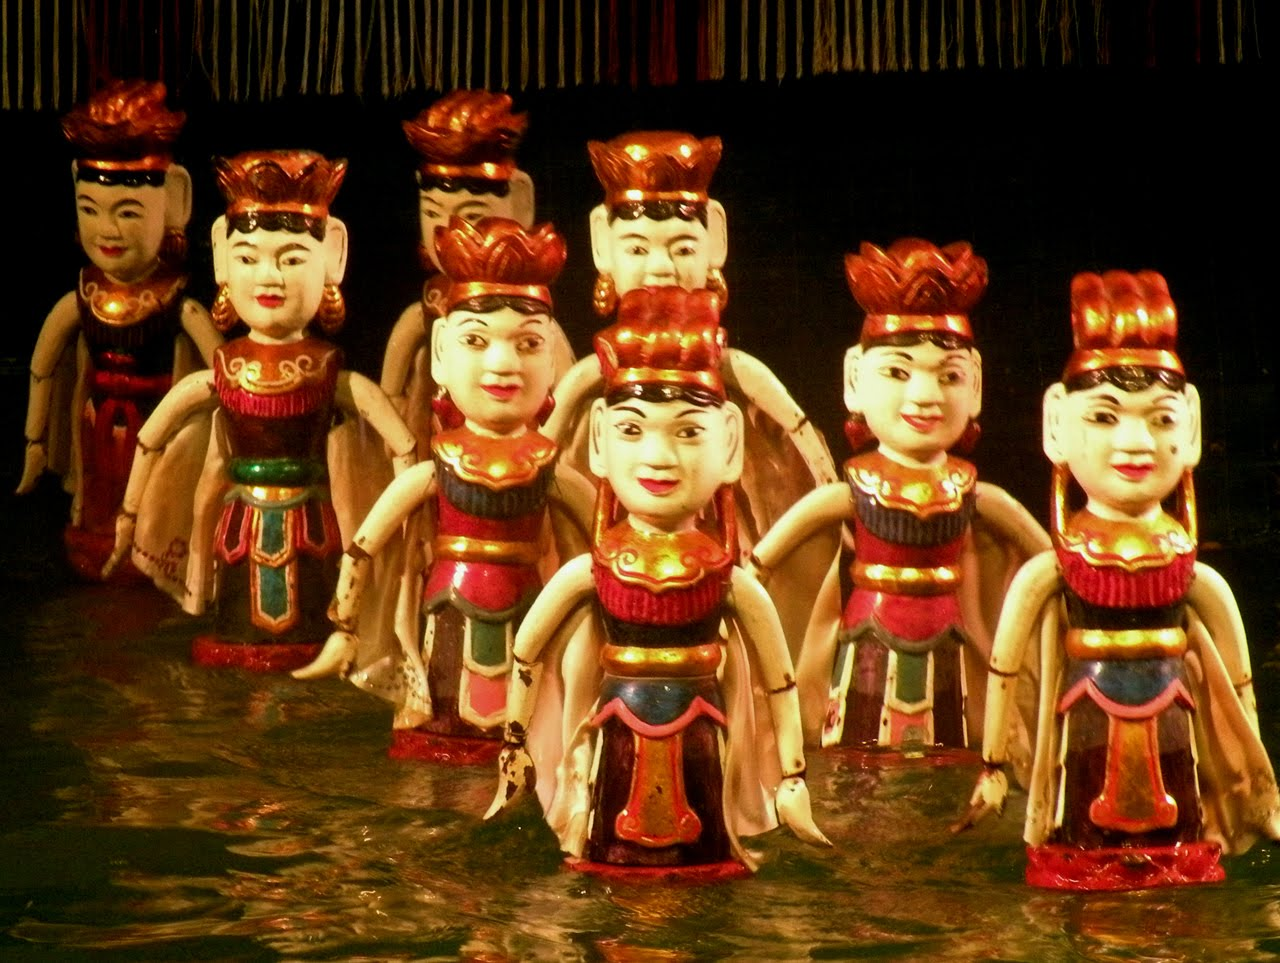 Chores of Water Puppets